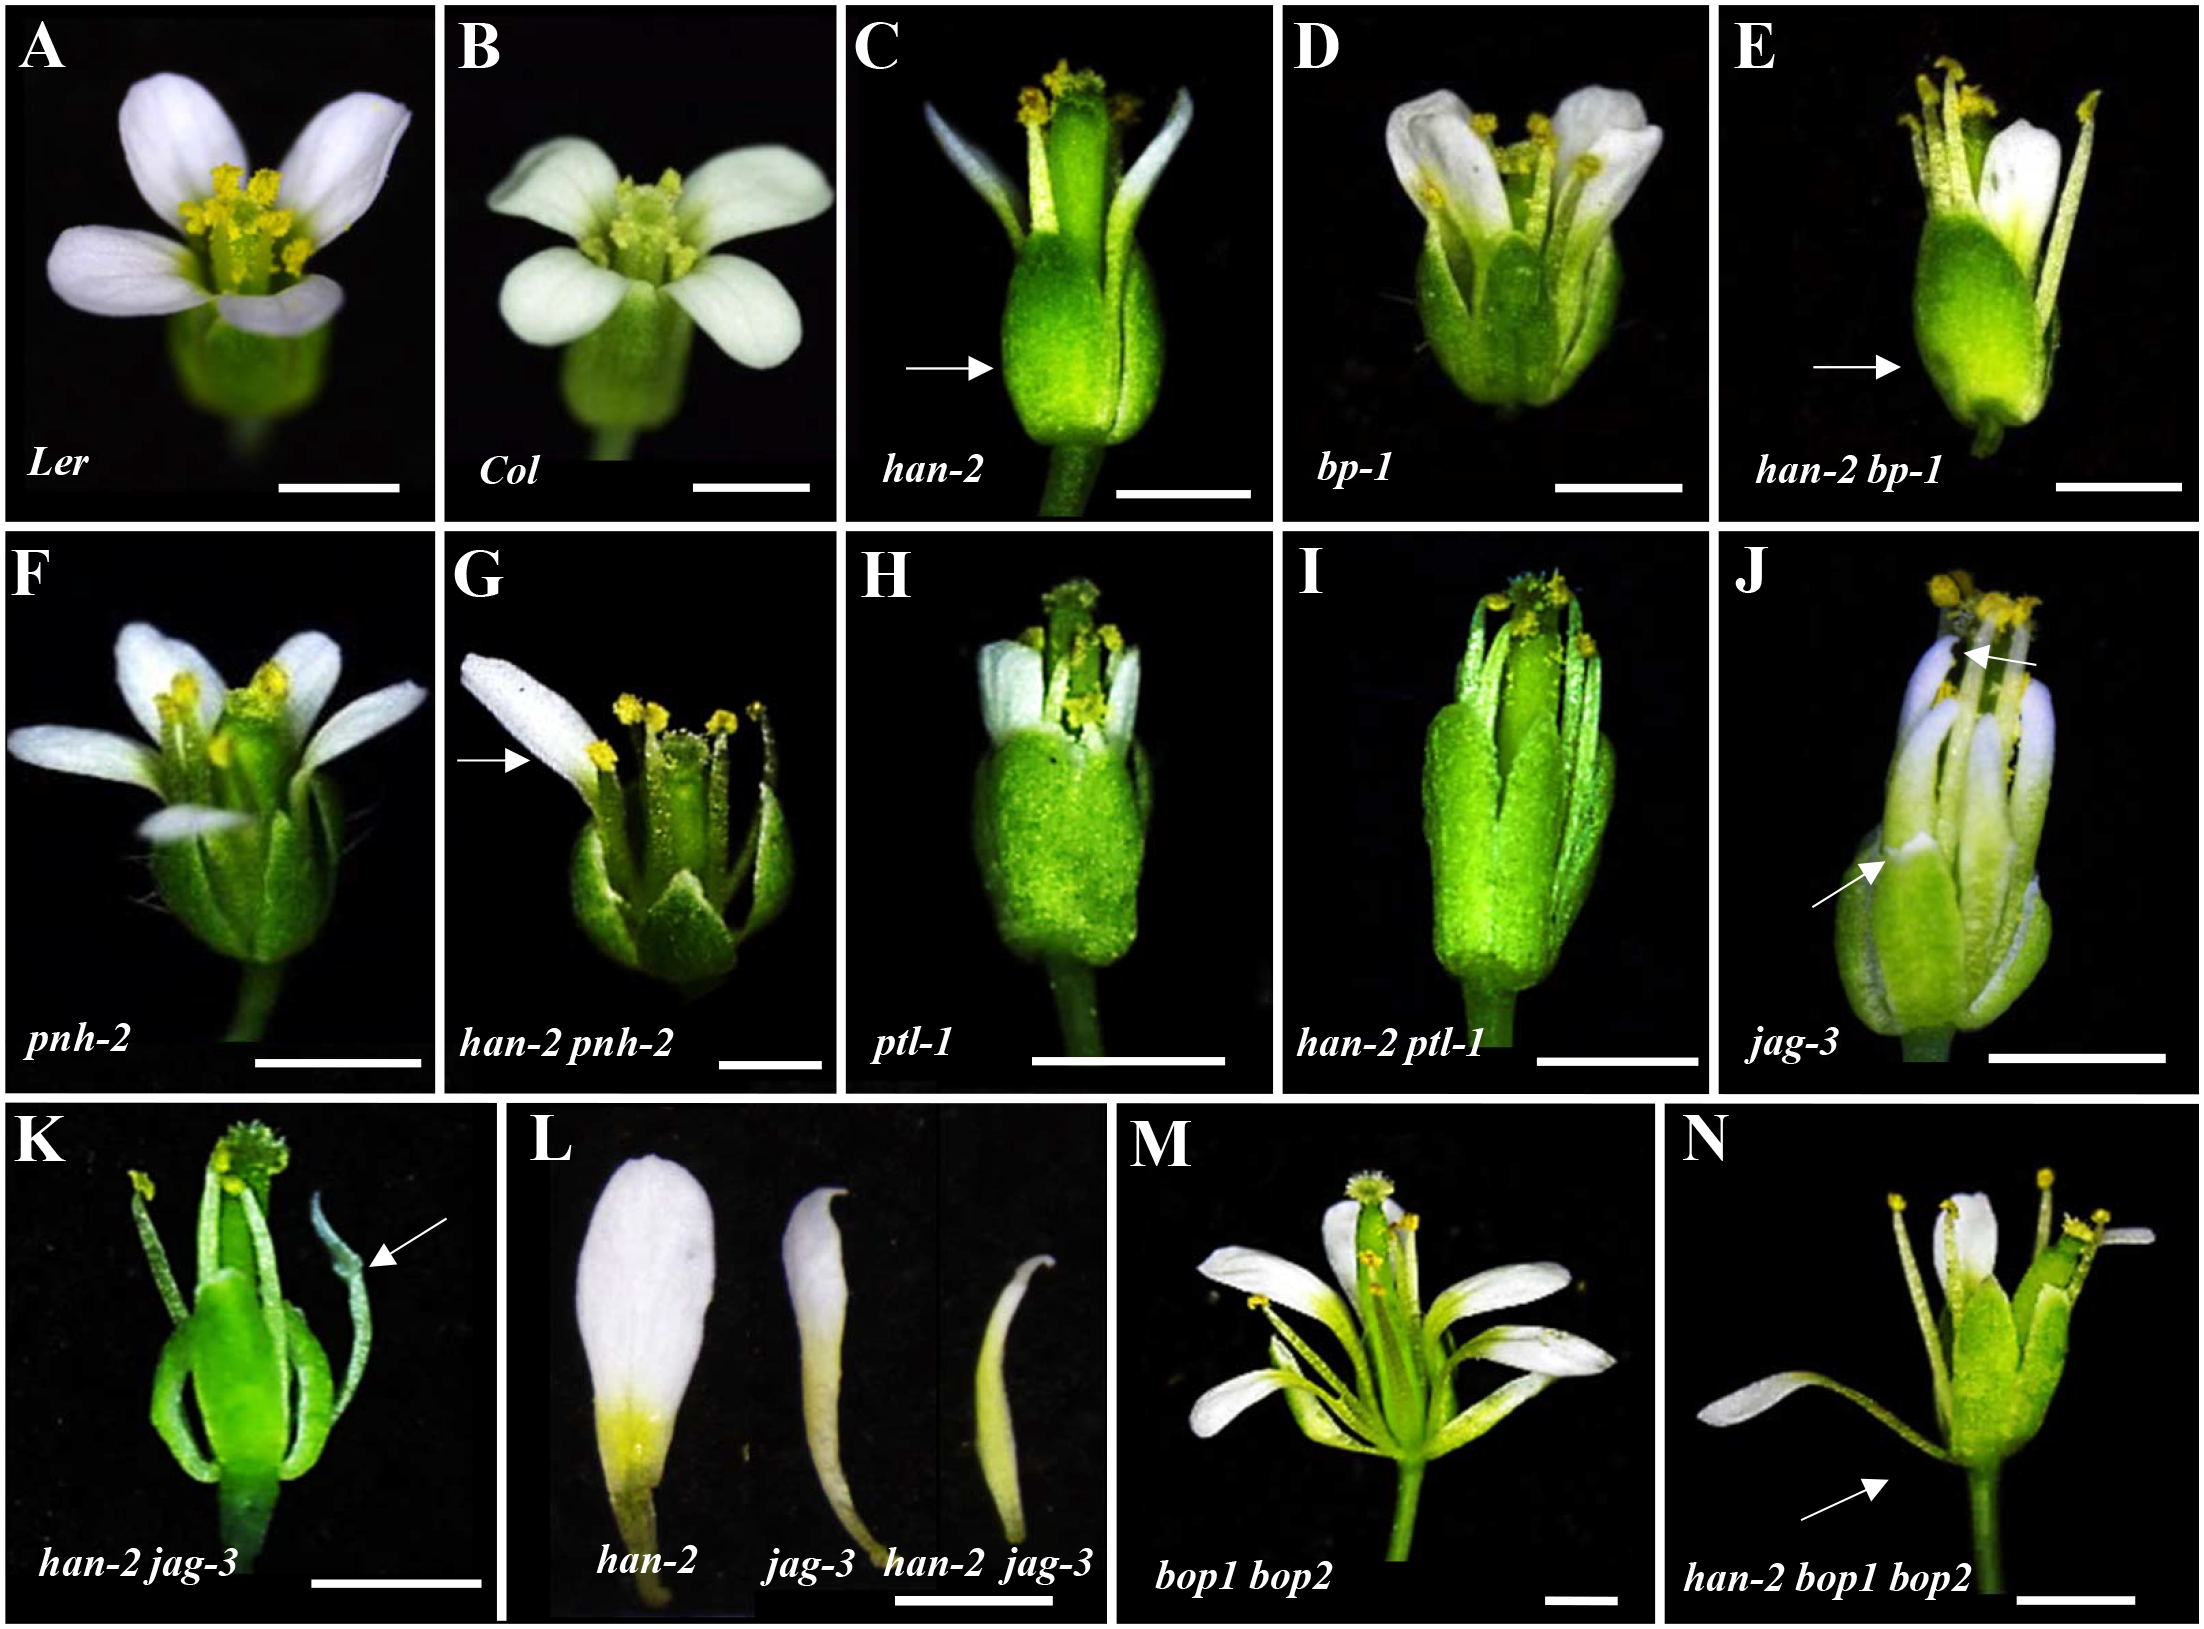 Genetic interactions of <i>HAN</i> with meristem and primordia regulators during flower development.